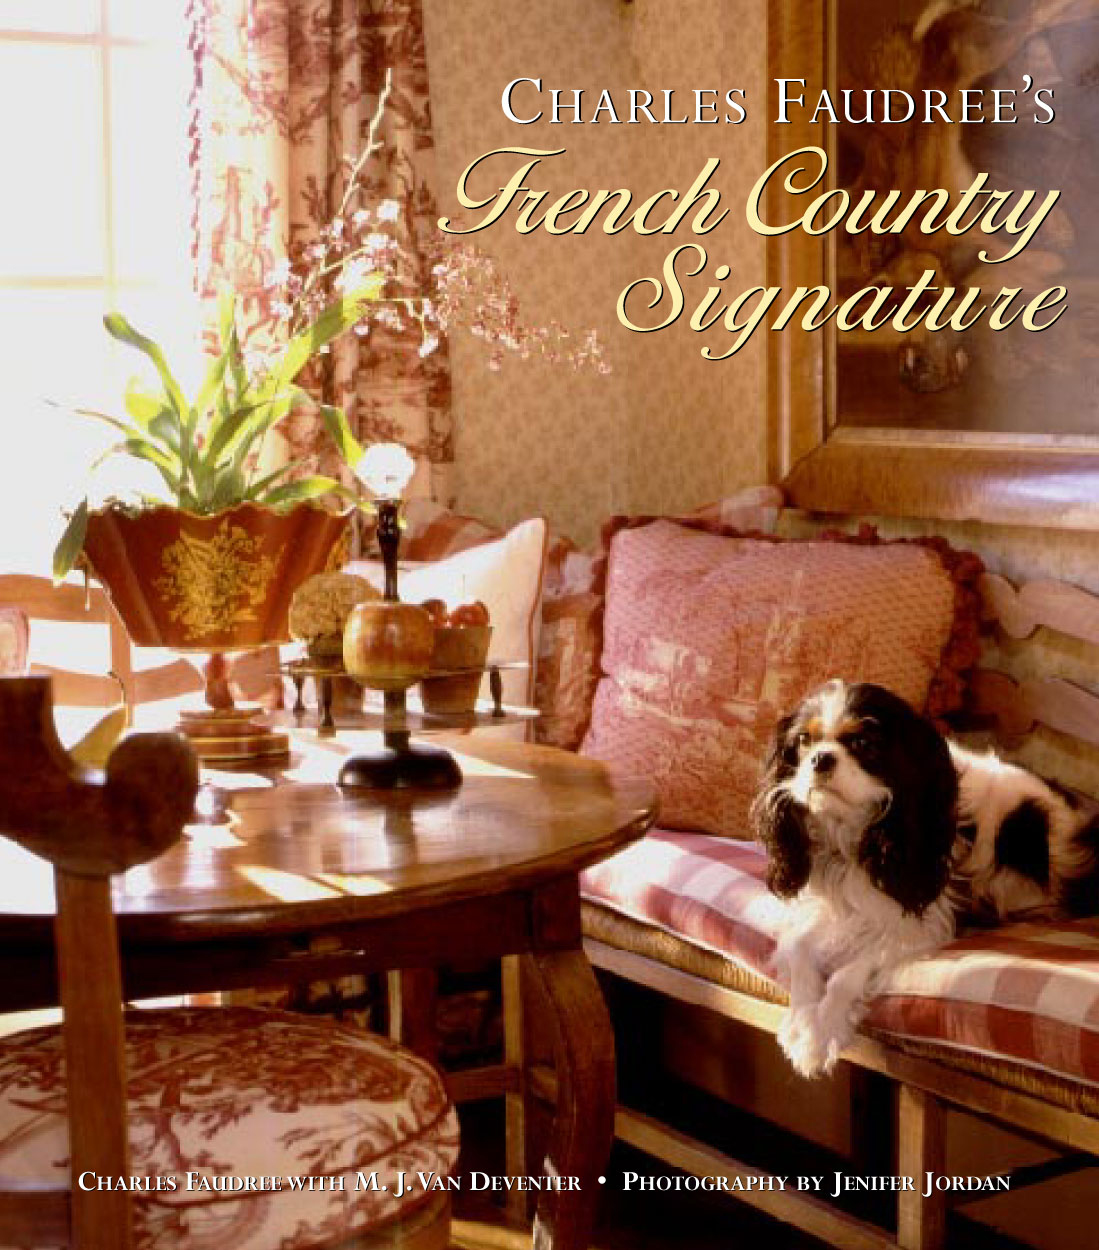 Charles Faudree's French Country Signature By: Charles Faudree